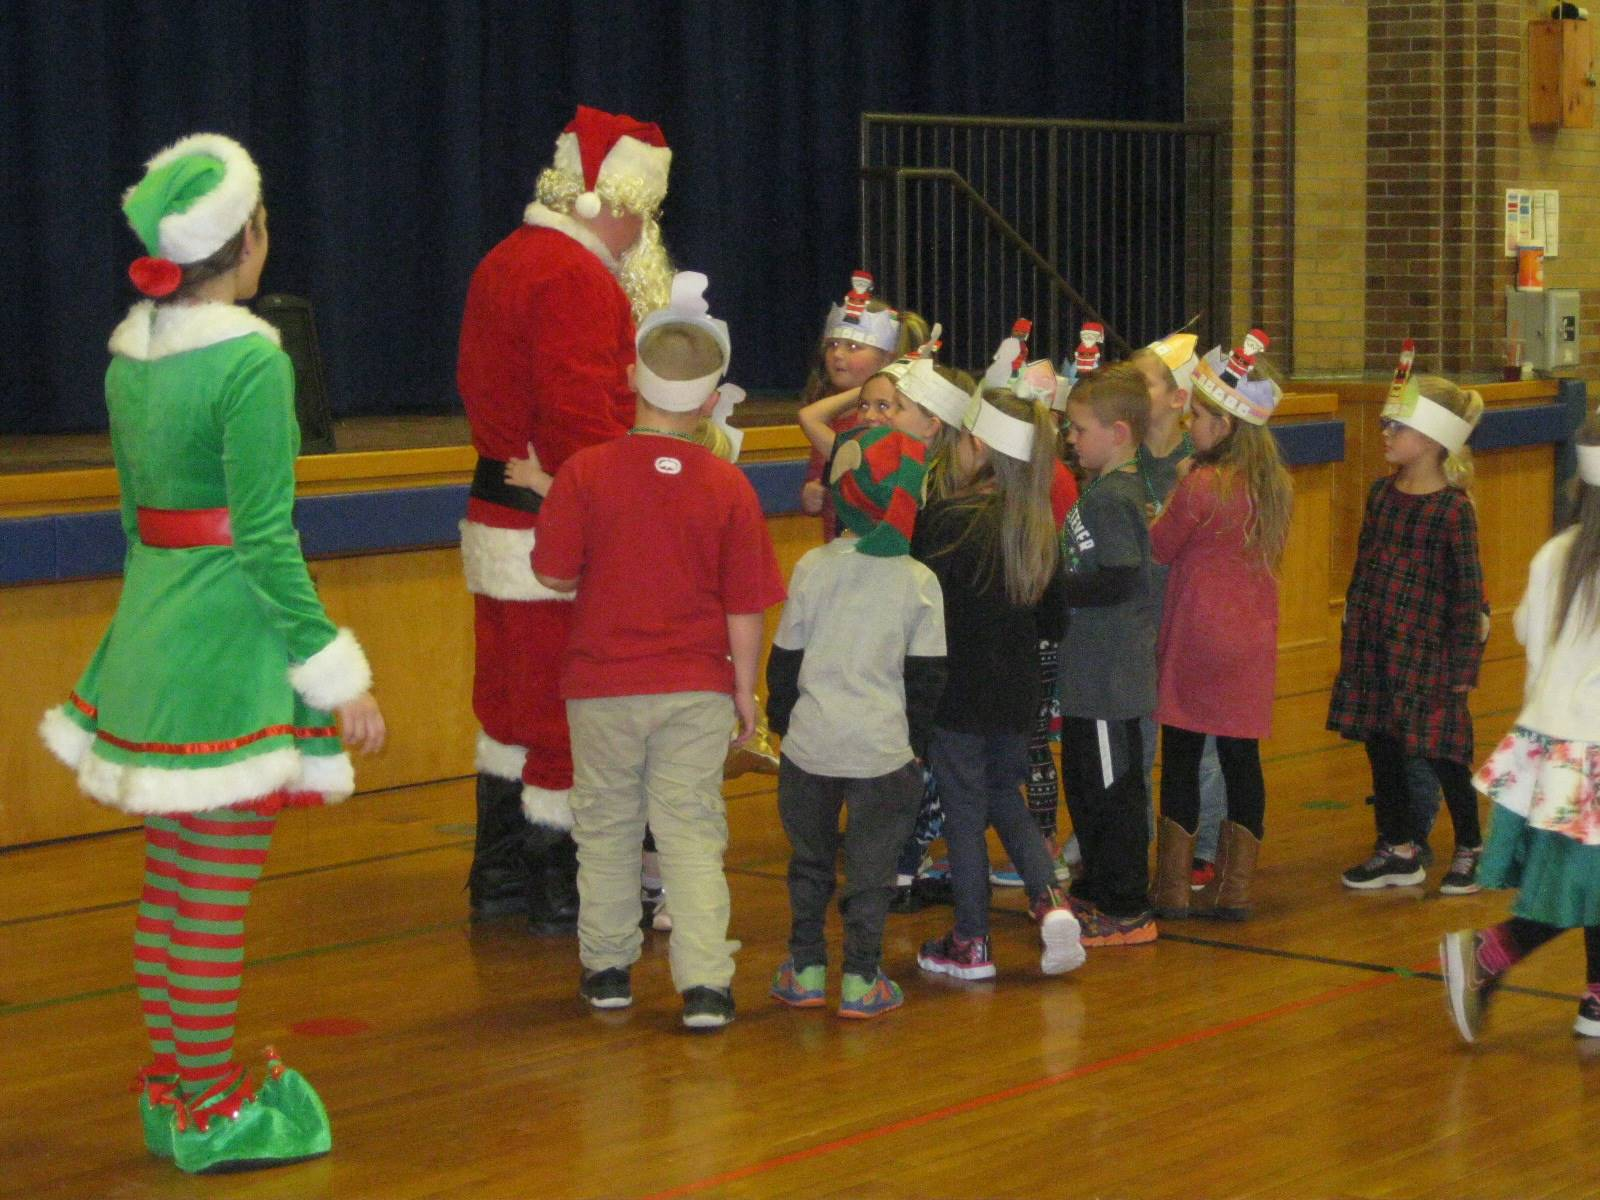 Santa and Elf give gifts to kids.